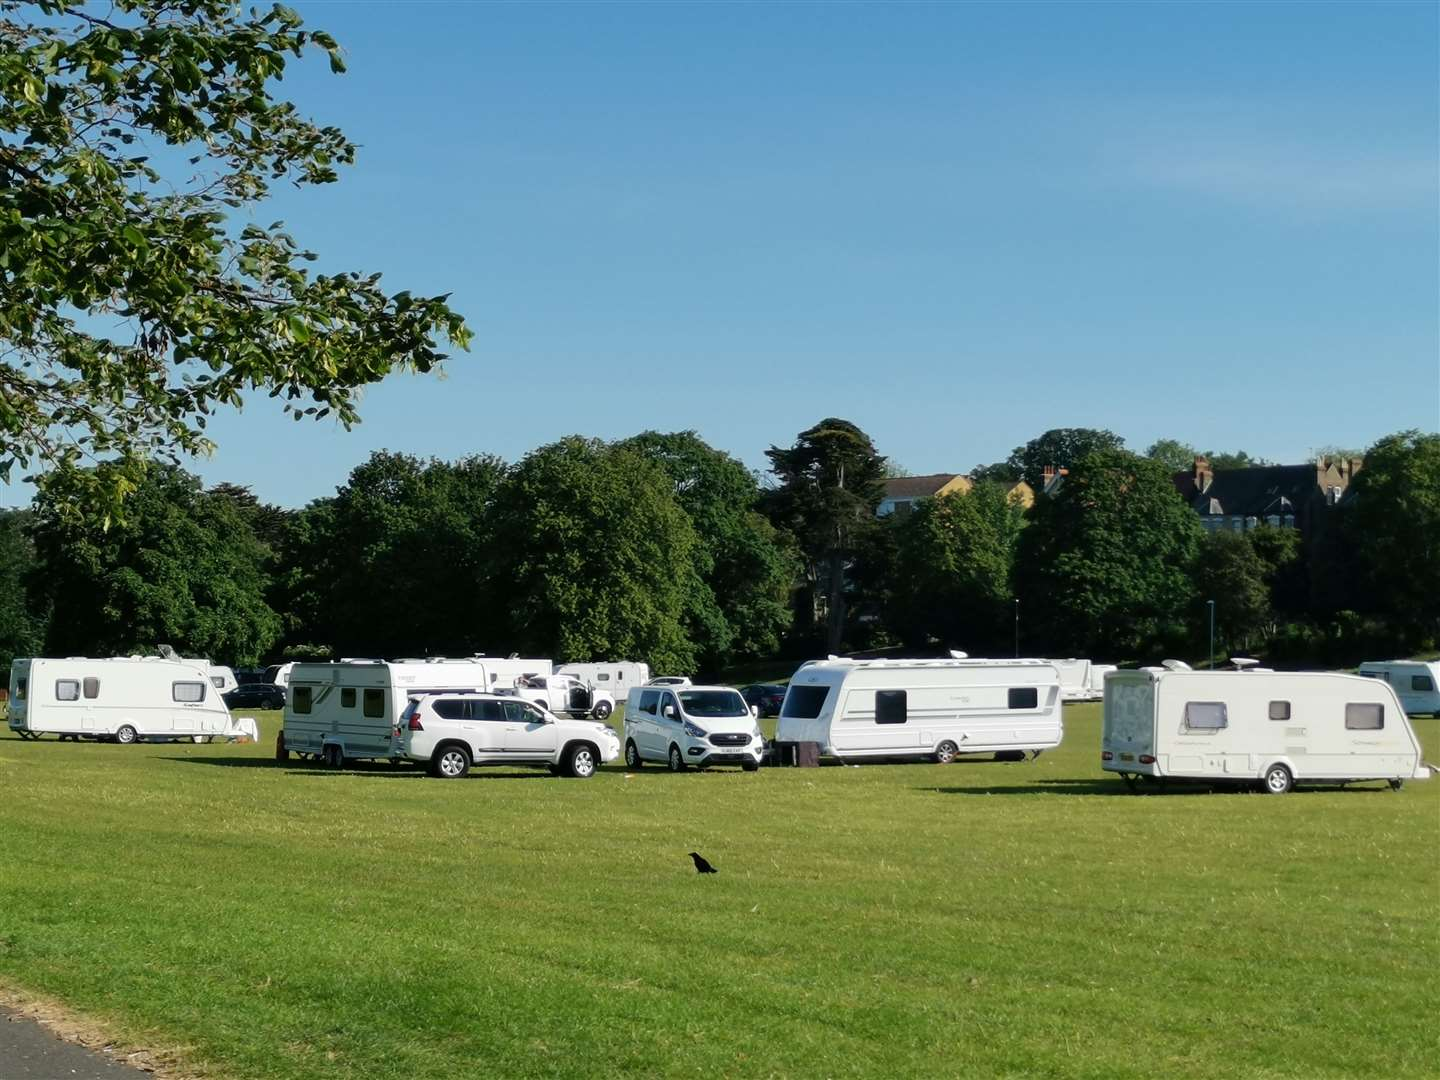 The travellers are 'isolating' due to a Covid case in their community